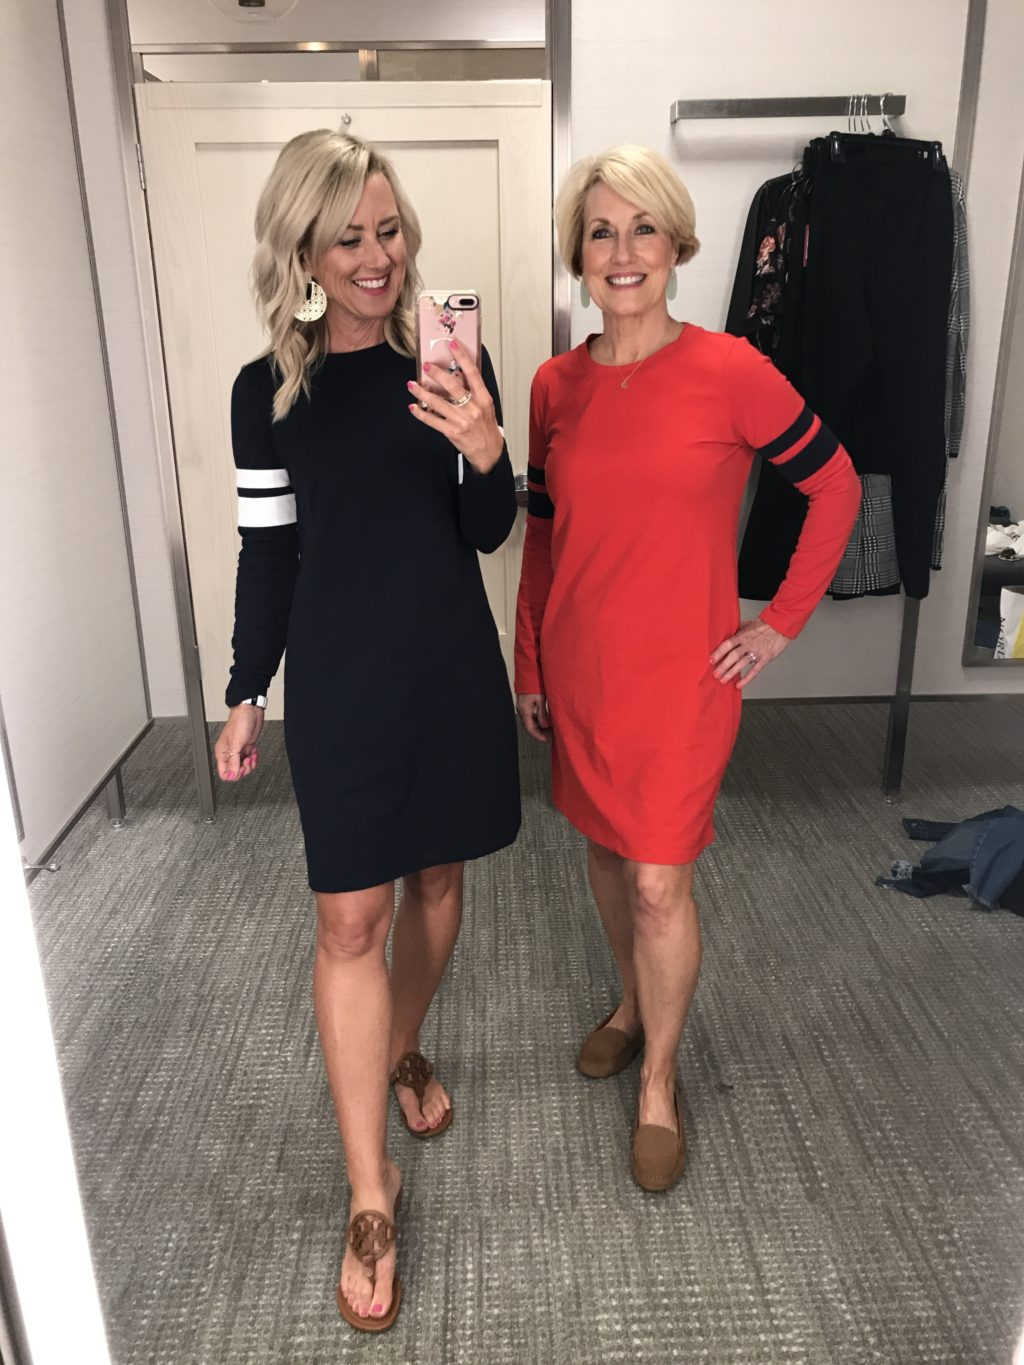 nordstrom anniversary sale outfit 1901 varsity knit shift dress black and red